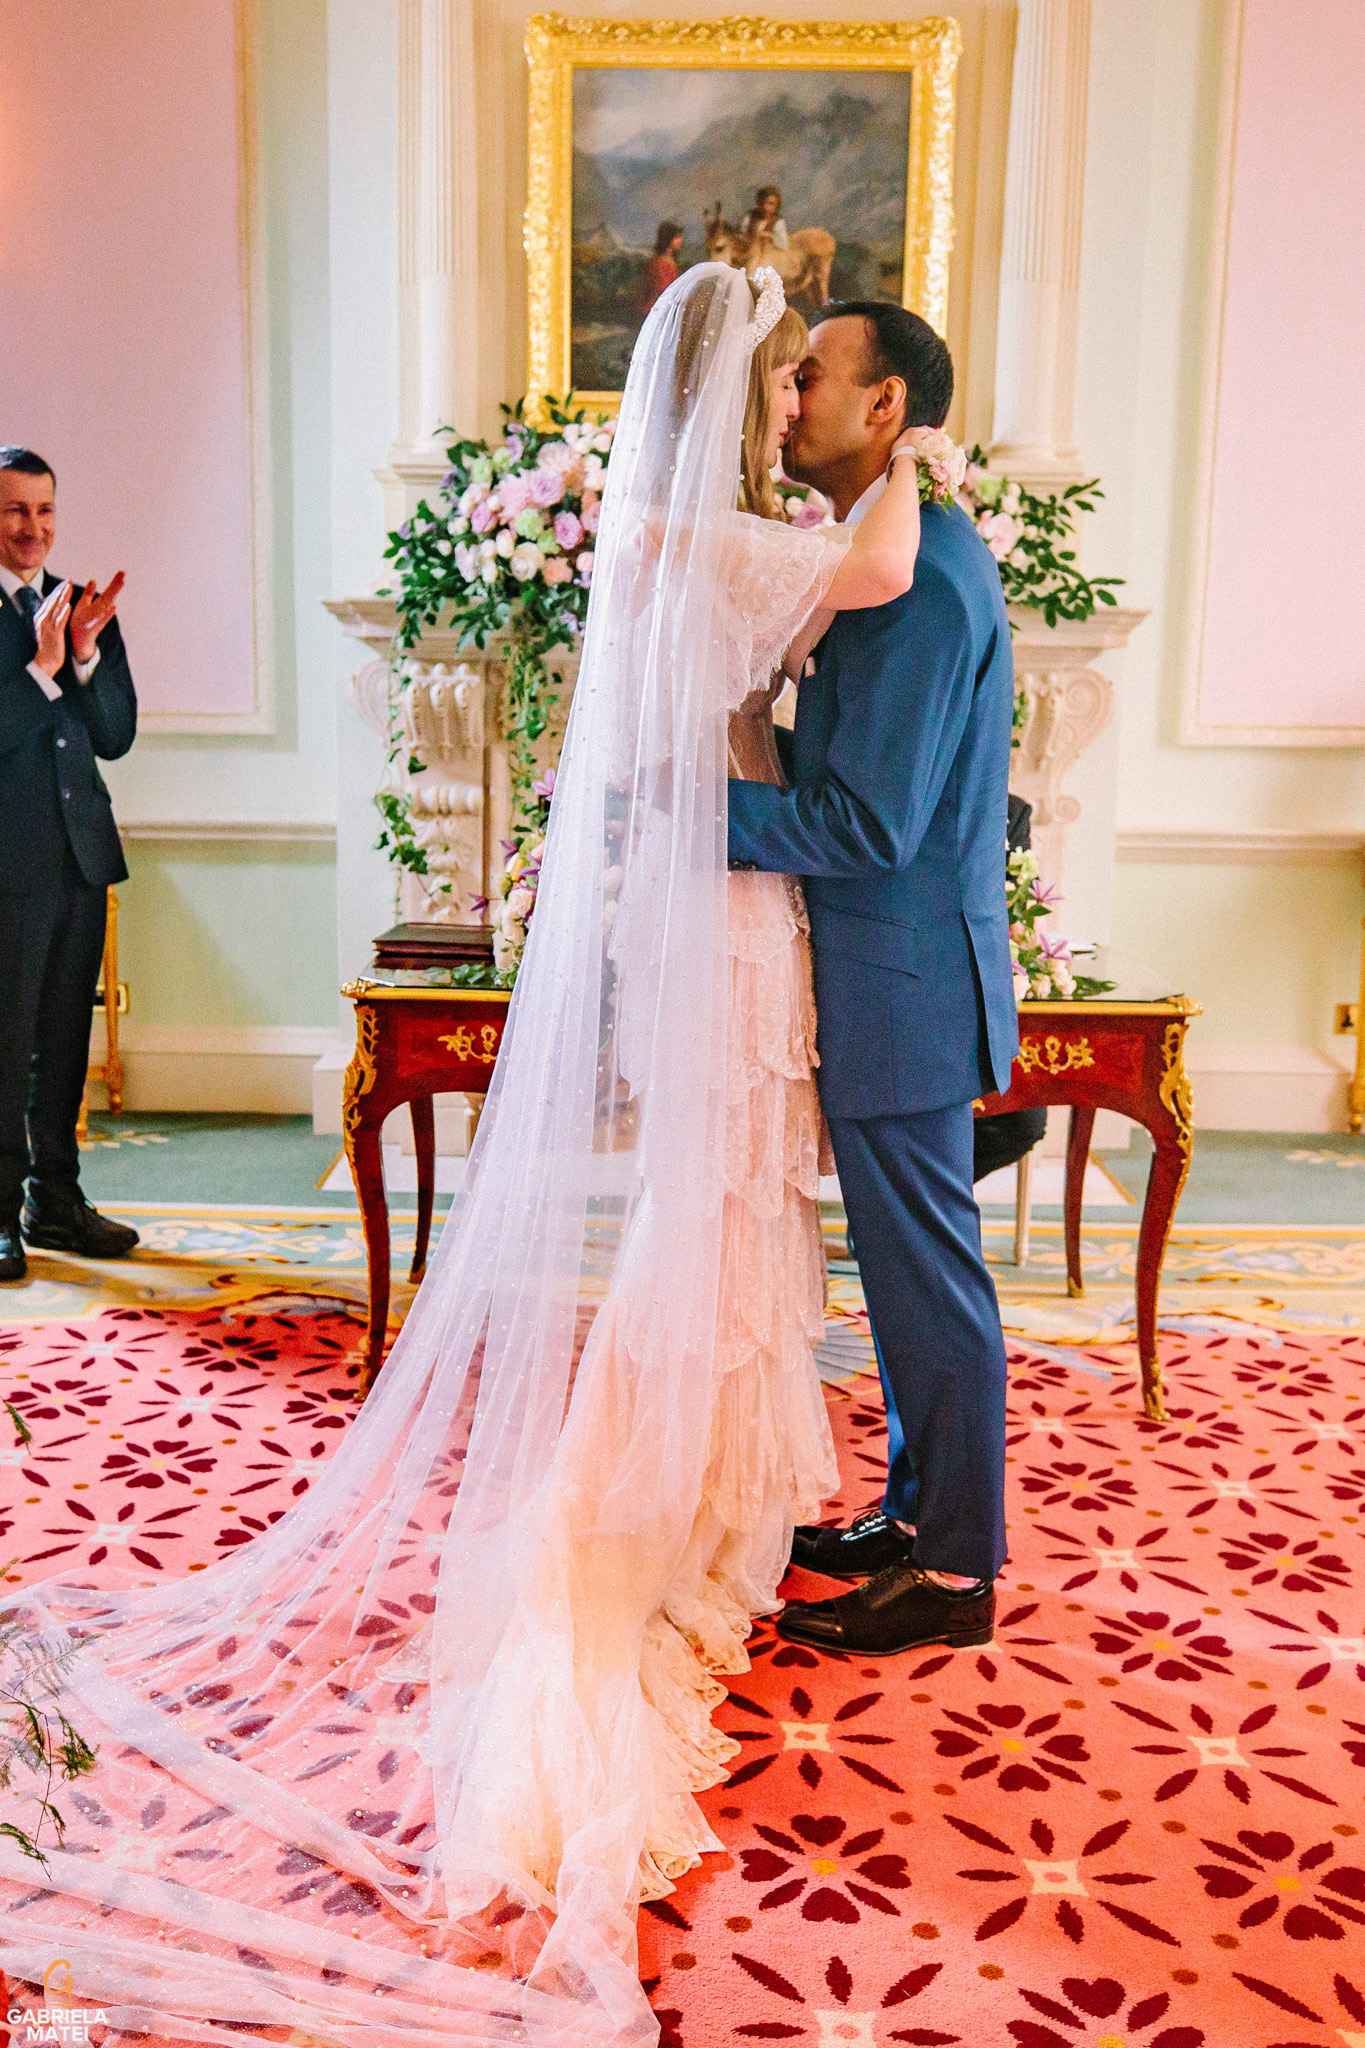 Bride and groom kissing during civil wedding at The Ritz hotel in London